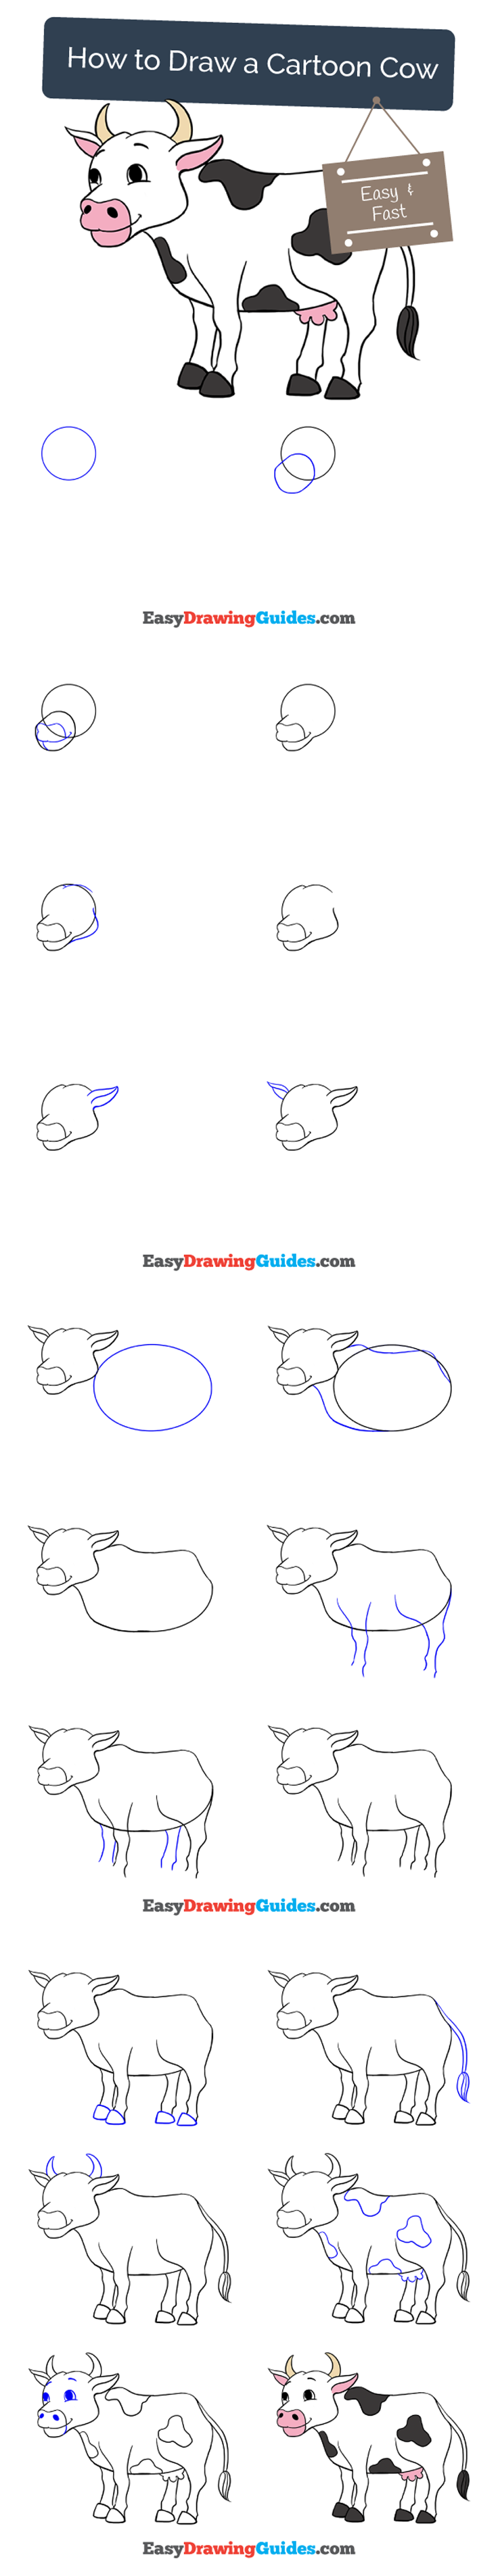 How to Draw a Cartoon Cow in a Few Easy Steps | Easy ...